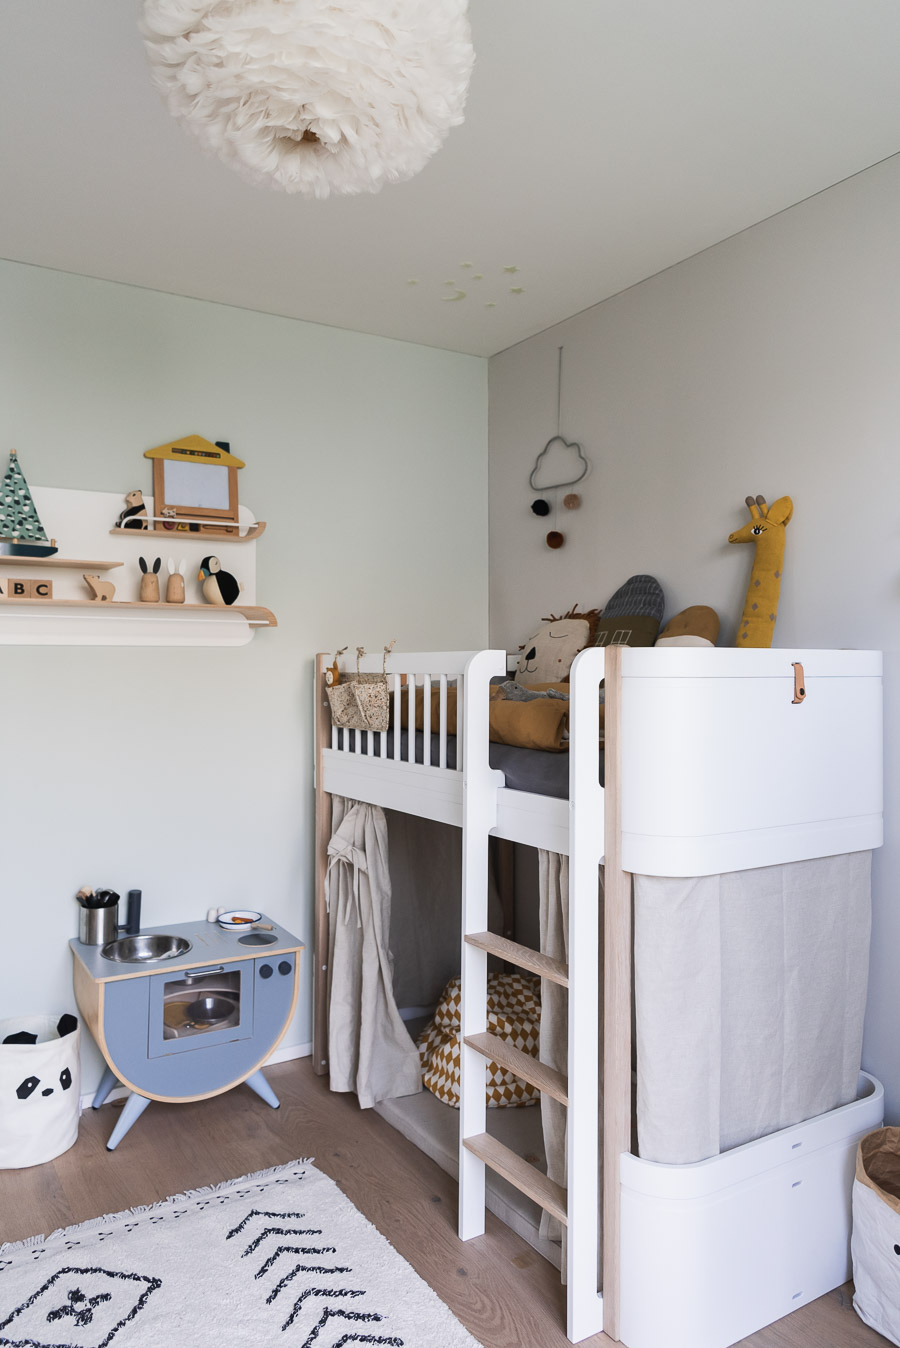 Homestory My Snowflake: About children's furniture and baby musthaves